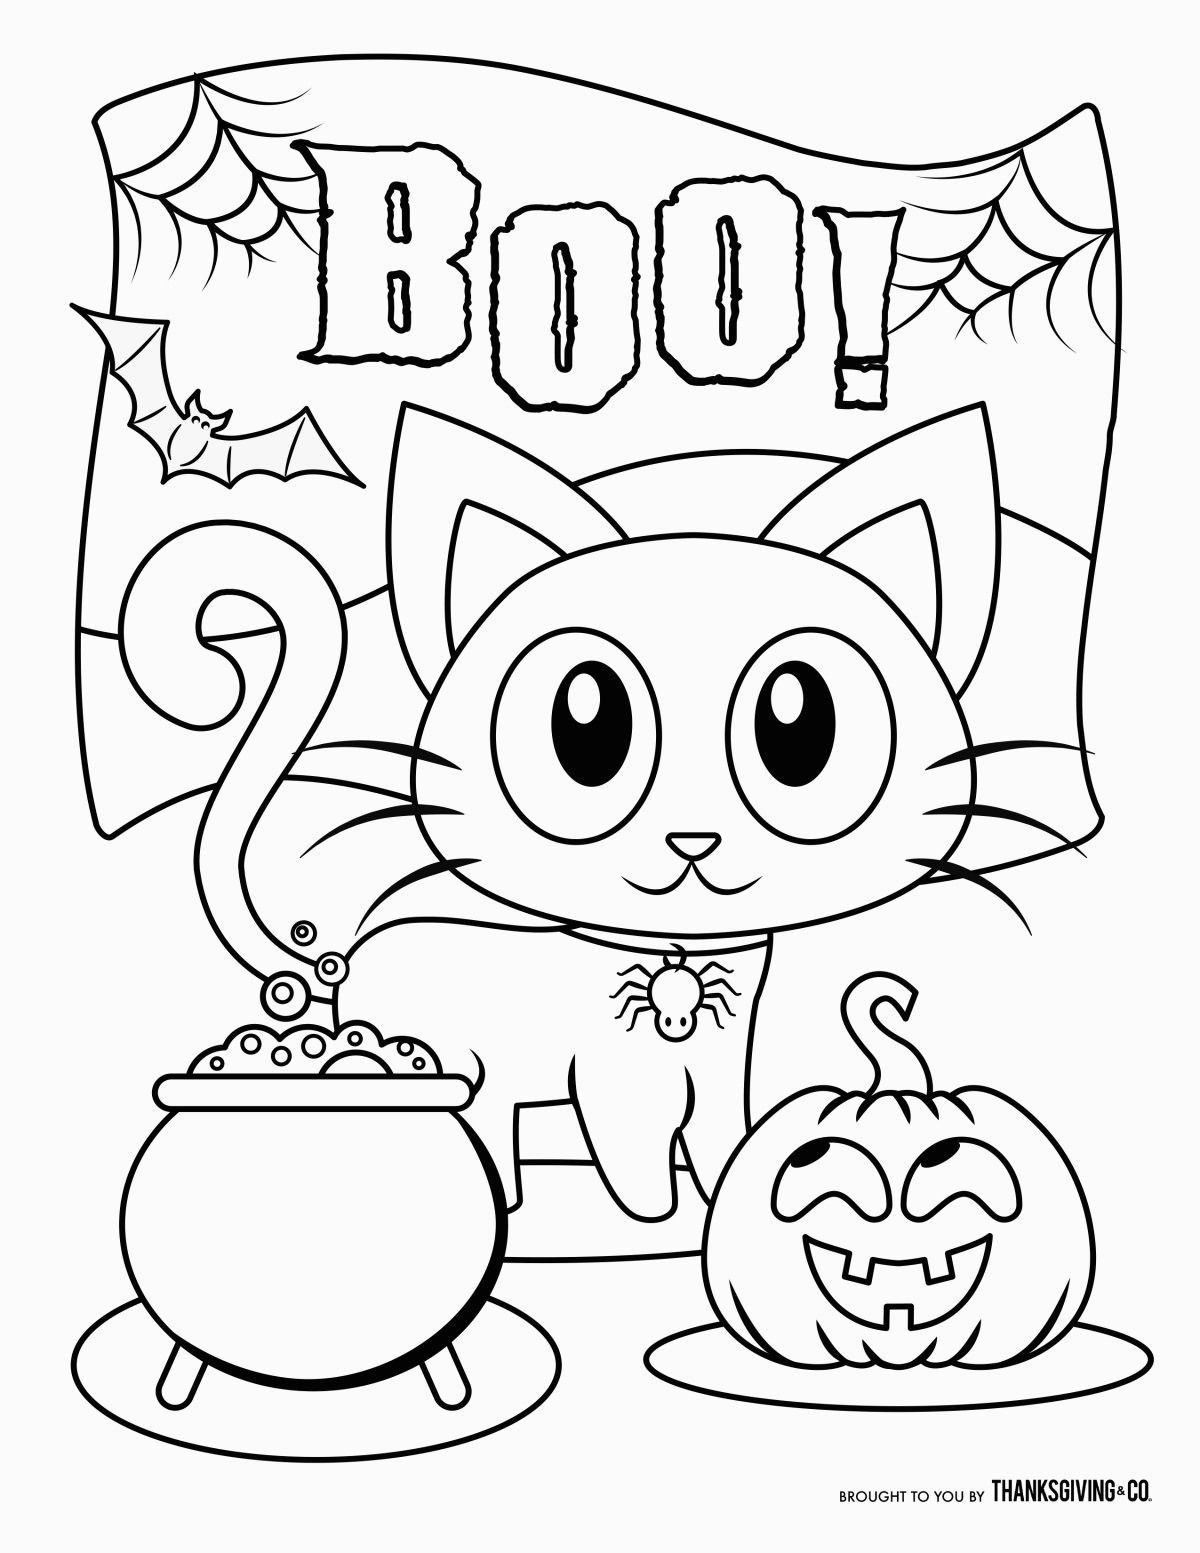 Free Printable Halloween Coloring Page Coloring Pages Incredible Free Printable Halloween Coloring Pages